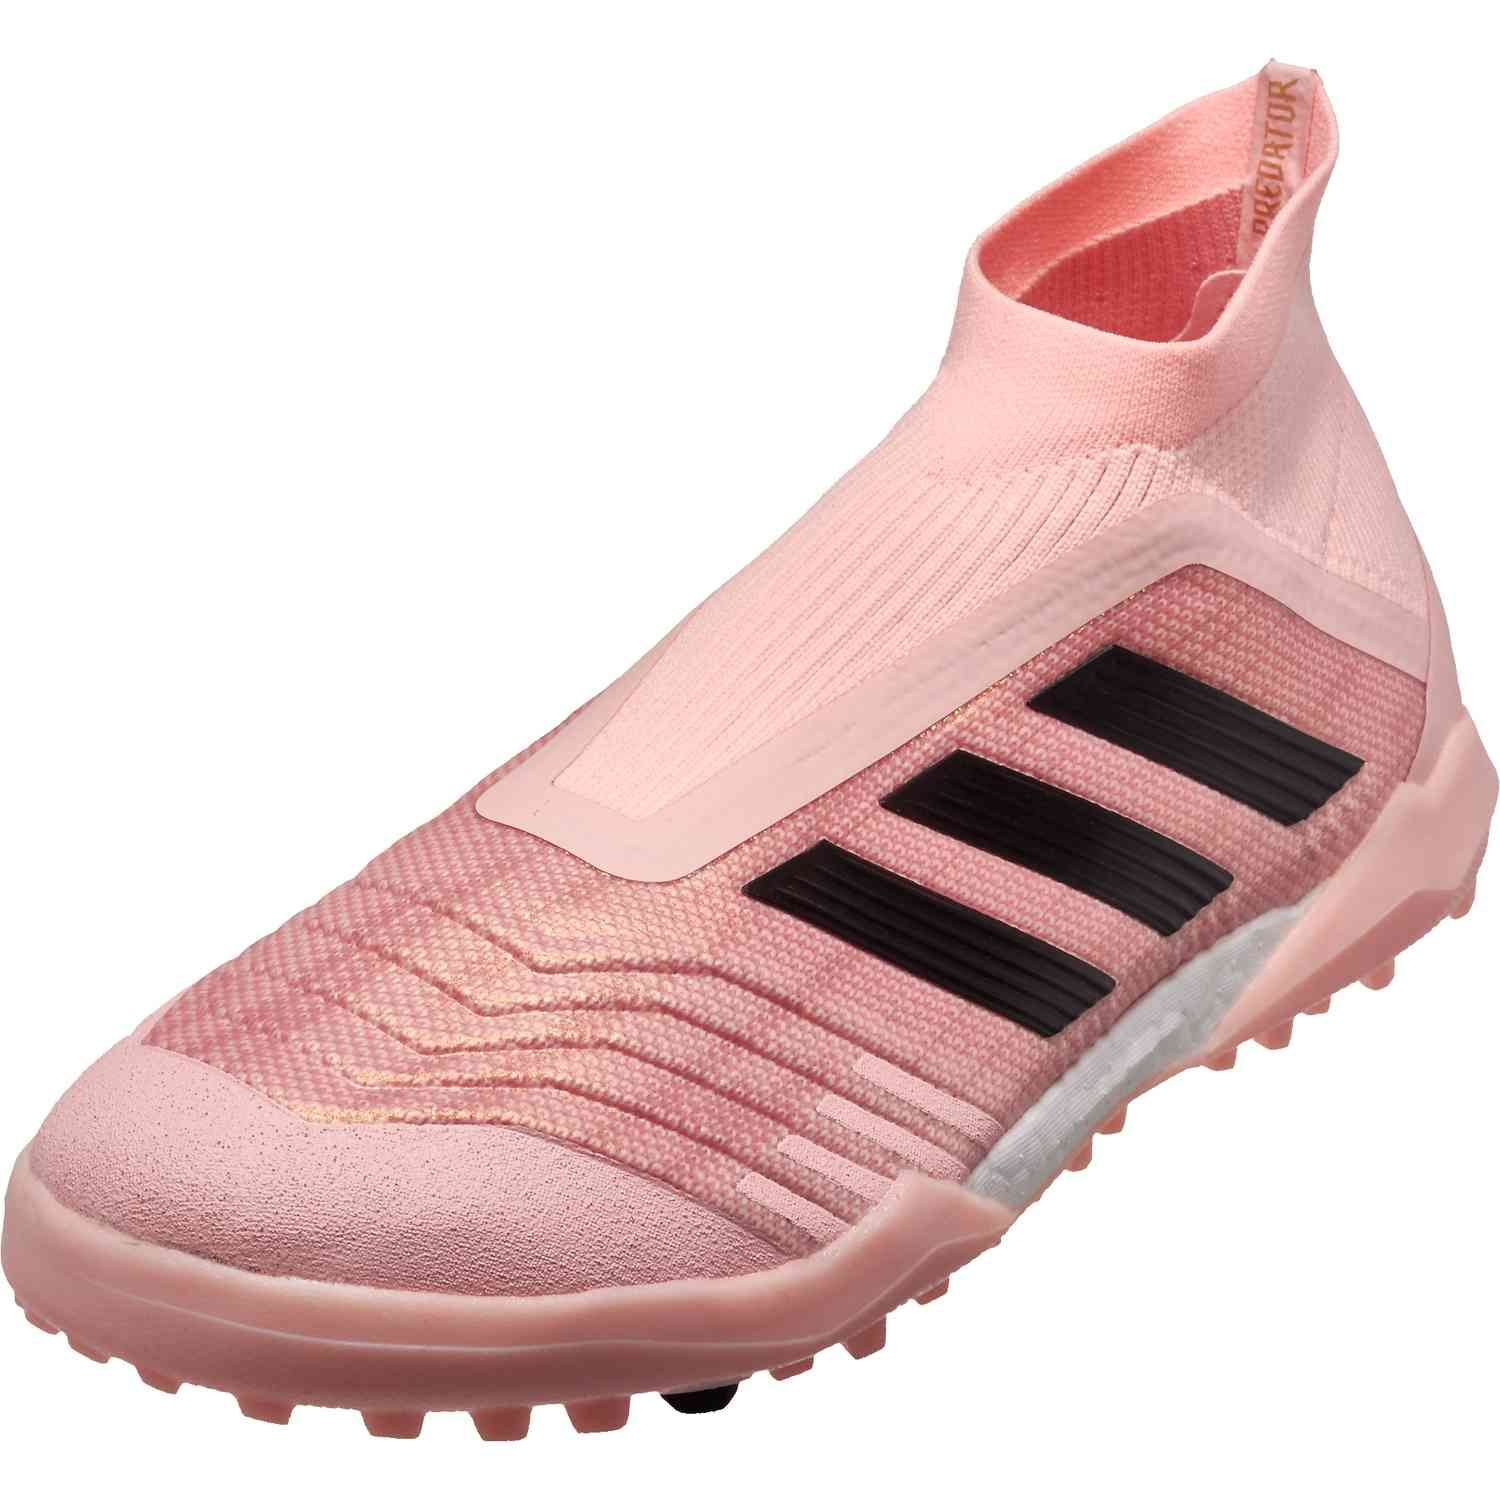 new styles 7fa1c 78481 Spectral Mode pack adidas Predator Tango 18 turf soccer shoes. Fresh at  soccerpro.com